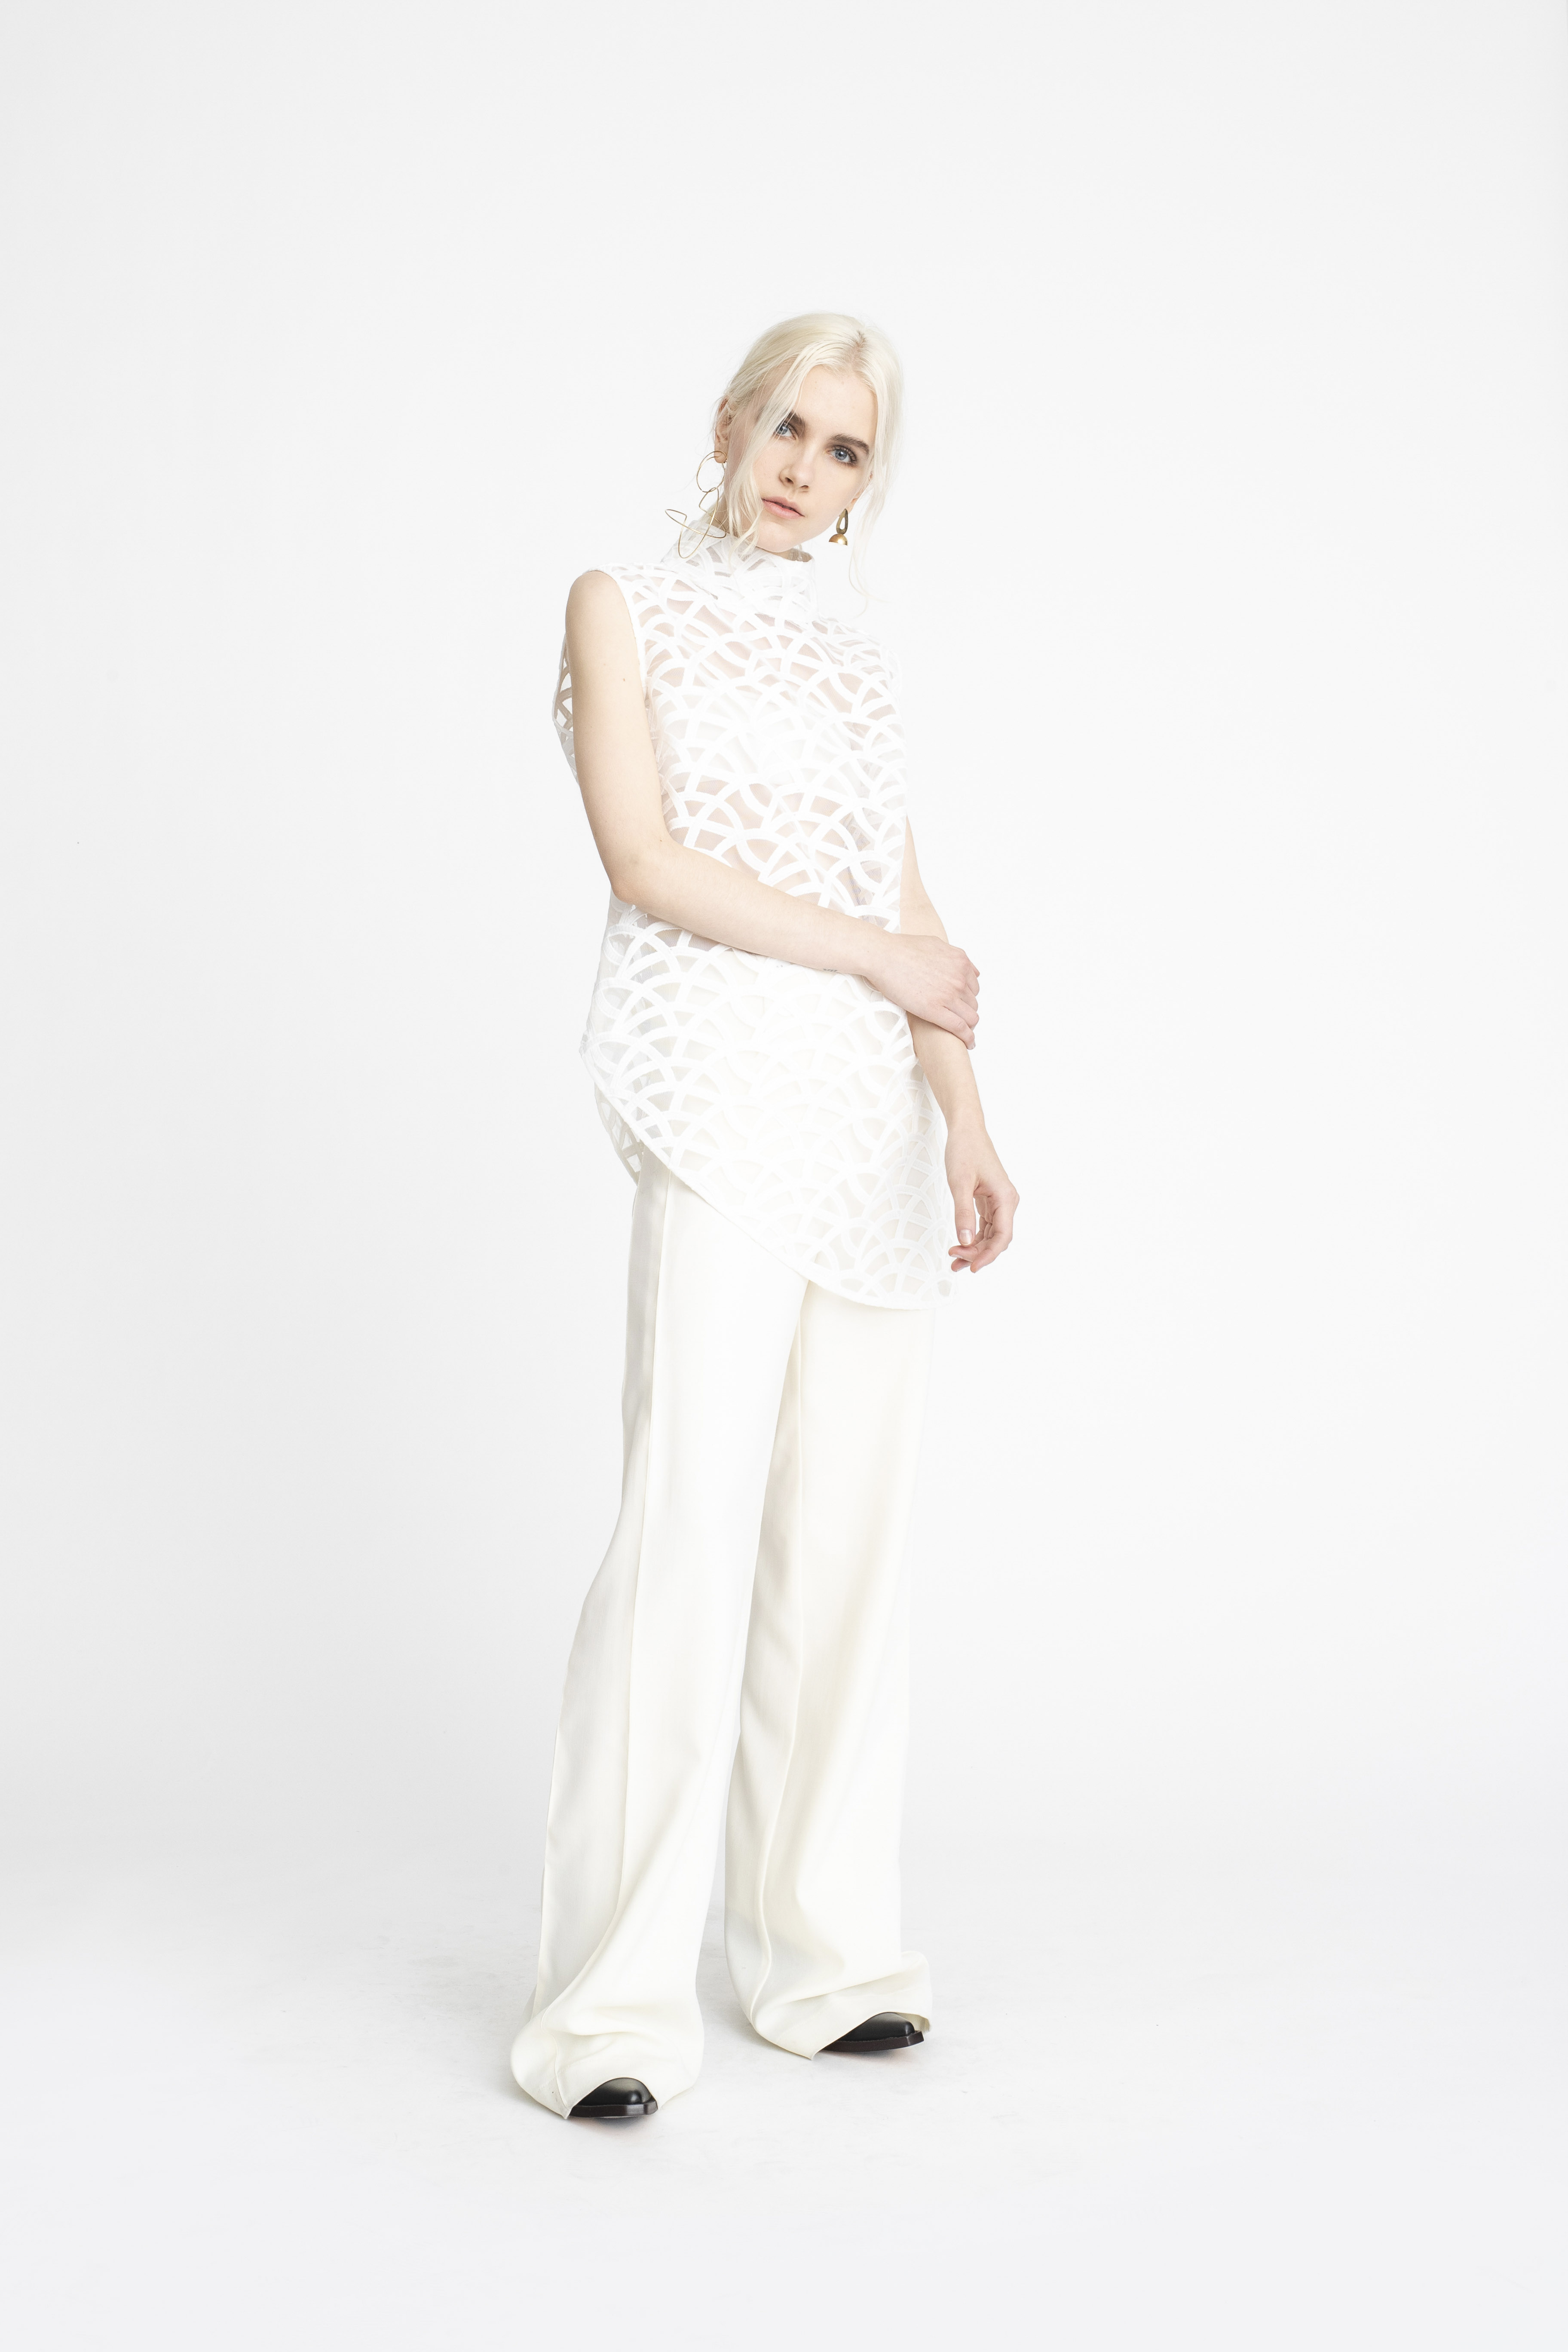 Sway-Top_Panelled-Joust-Pant_TaylorBoutique_AW19_L57_1407 2